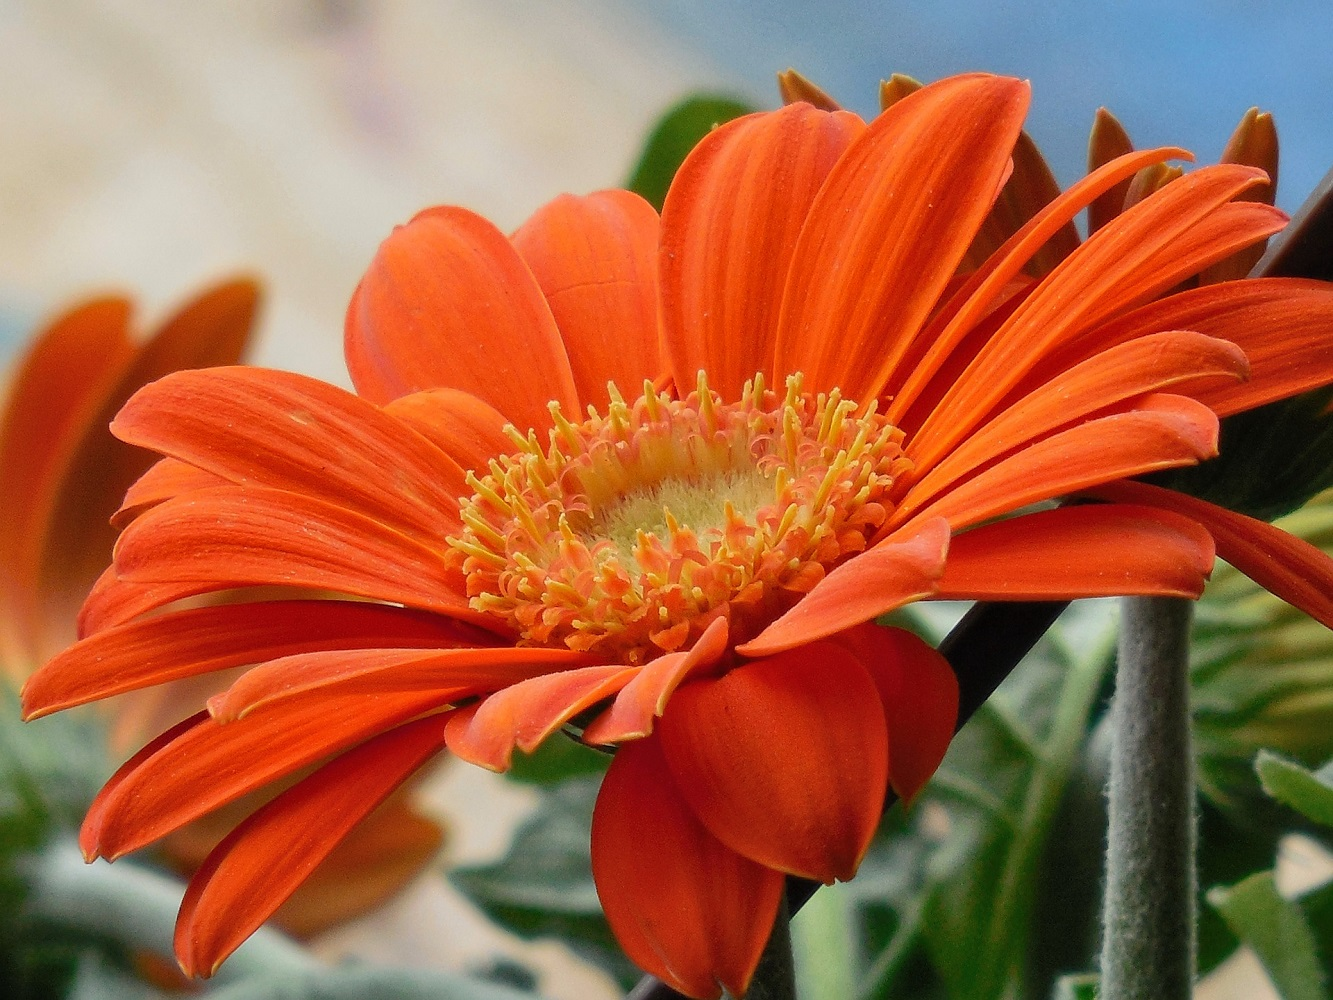 Orange Gerbera Daisy to beat pollution